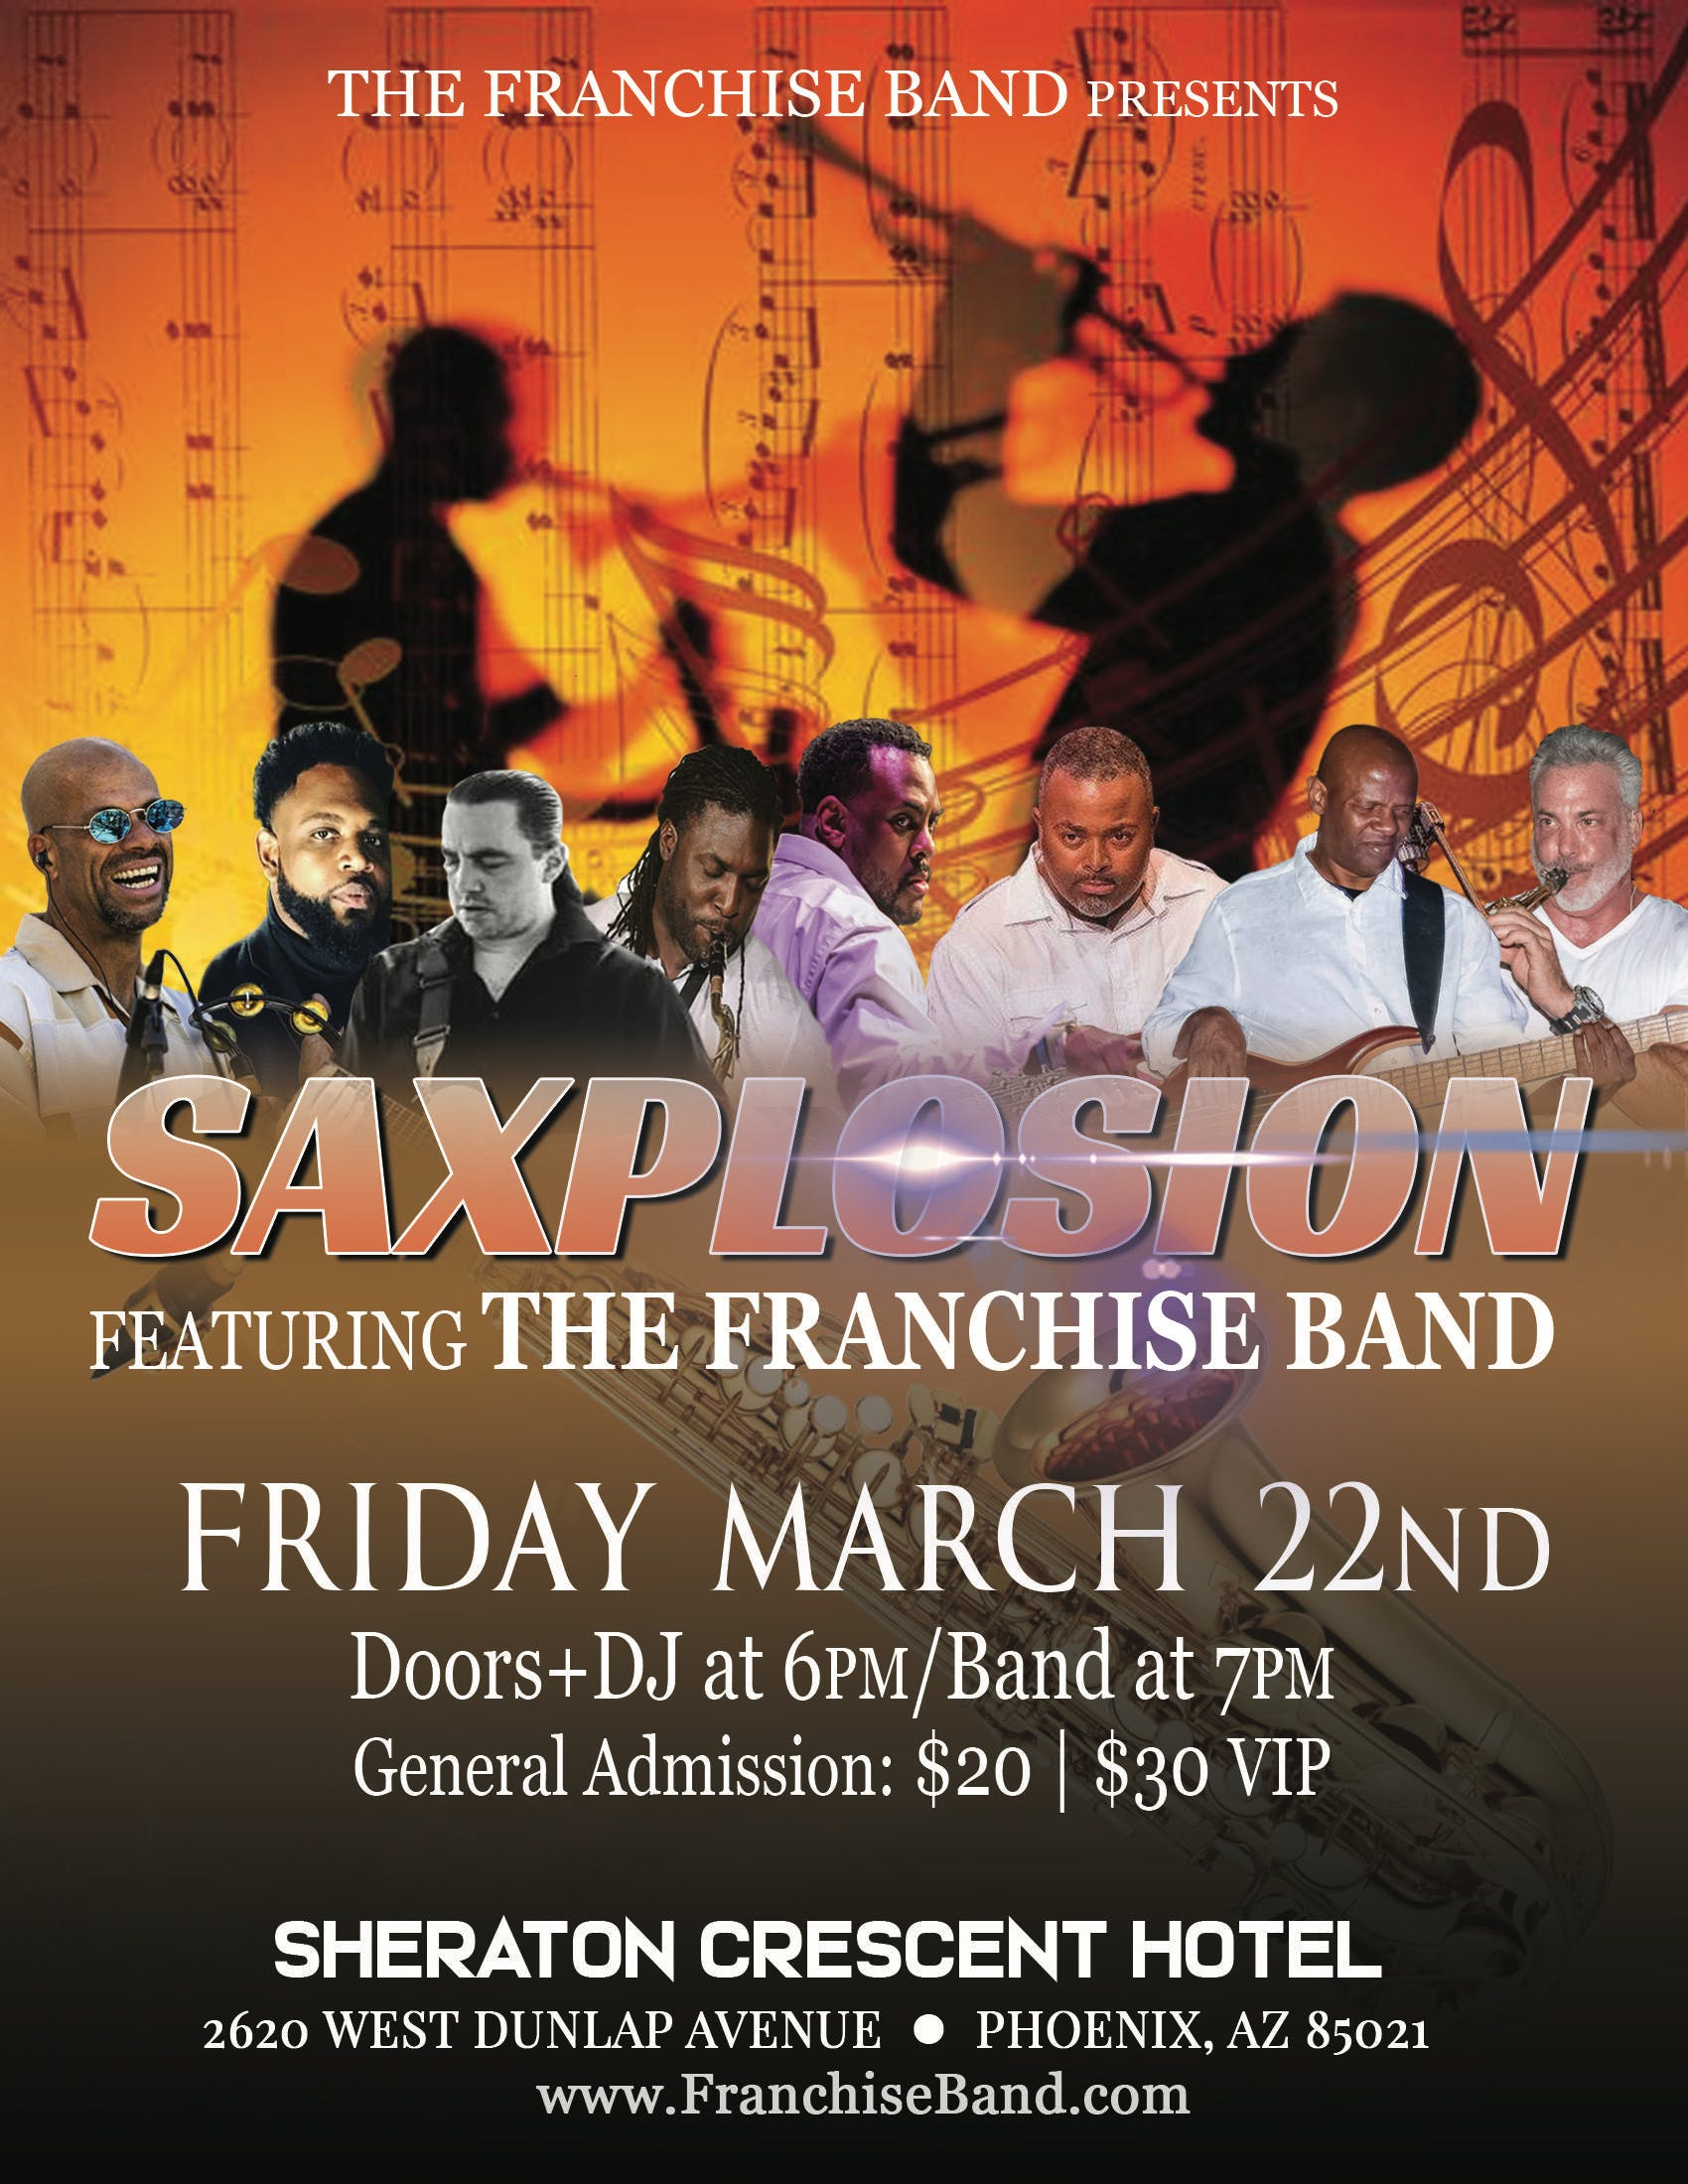 The Franchise Band Presents Saxplosion @ the Sheraton Crescent Hotel